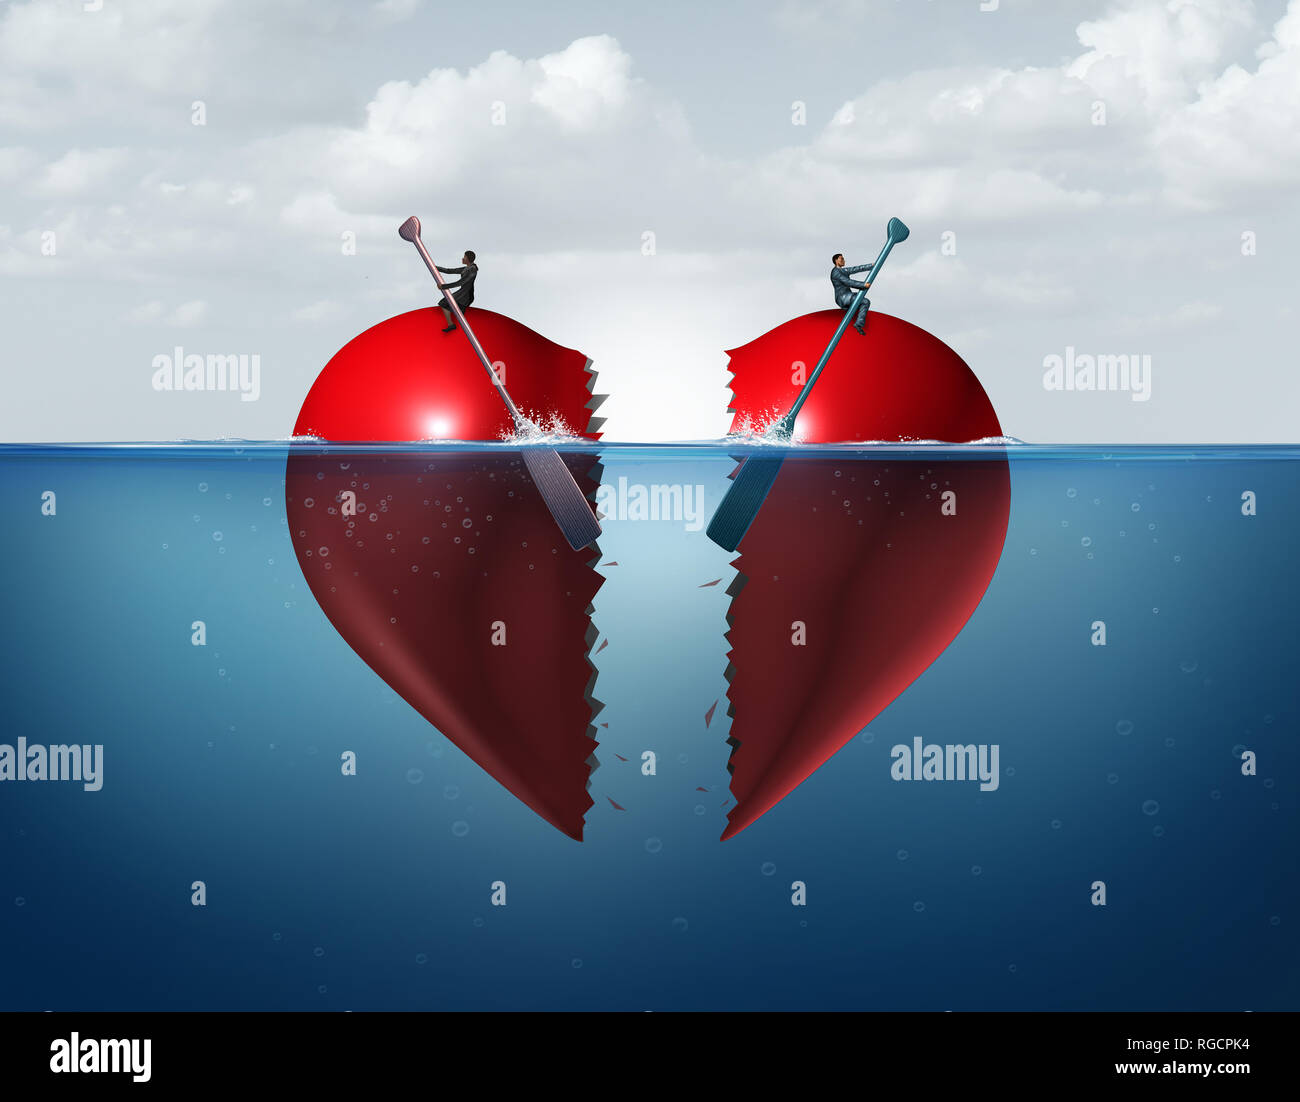 Divorce separation as a broken relationship with a couple drifting away breaking a heart apart showing the concept of a marriage dispute. - Stock Image